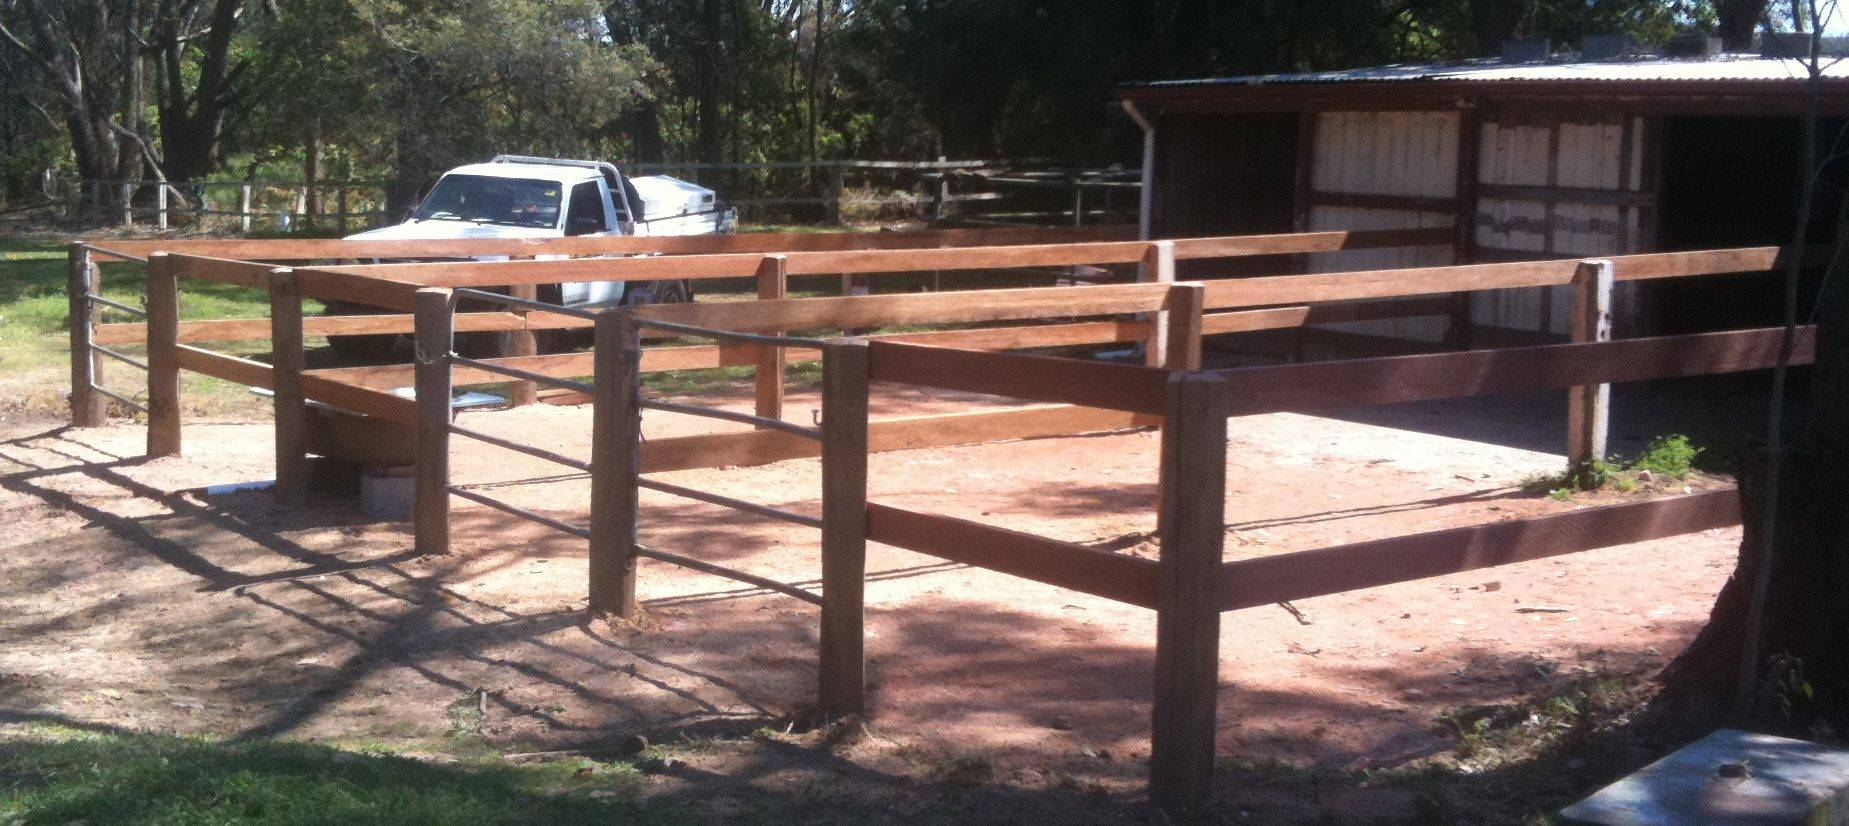 Stable yards at completion of earthworks and fencing